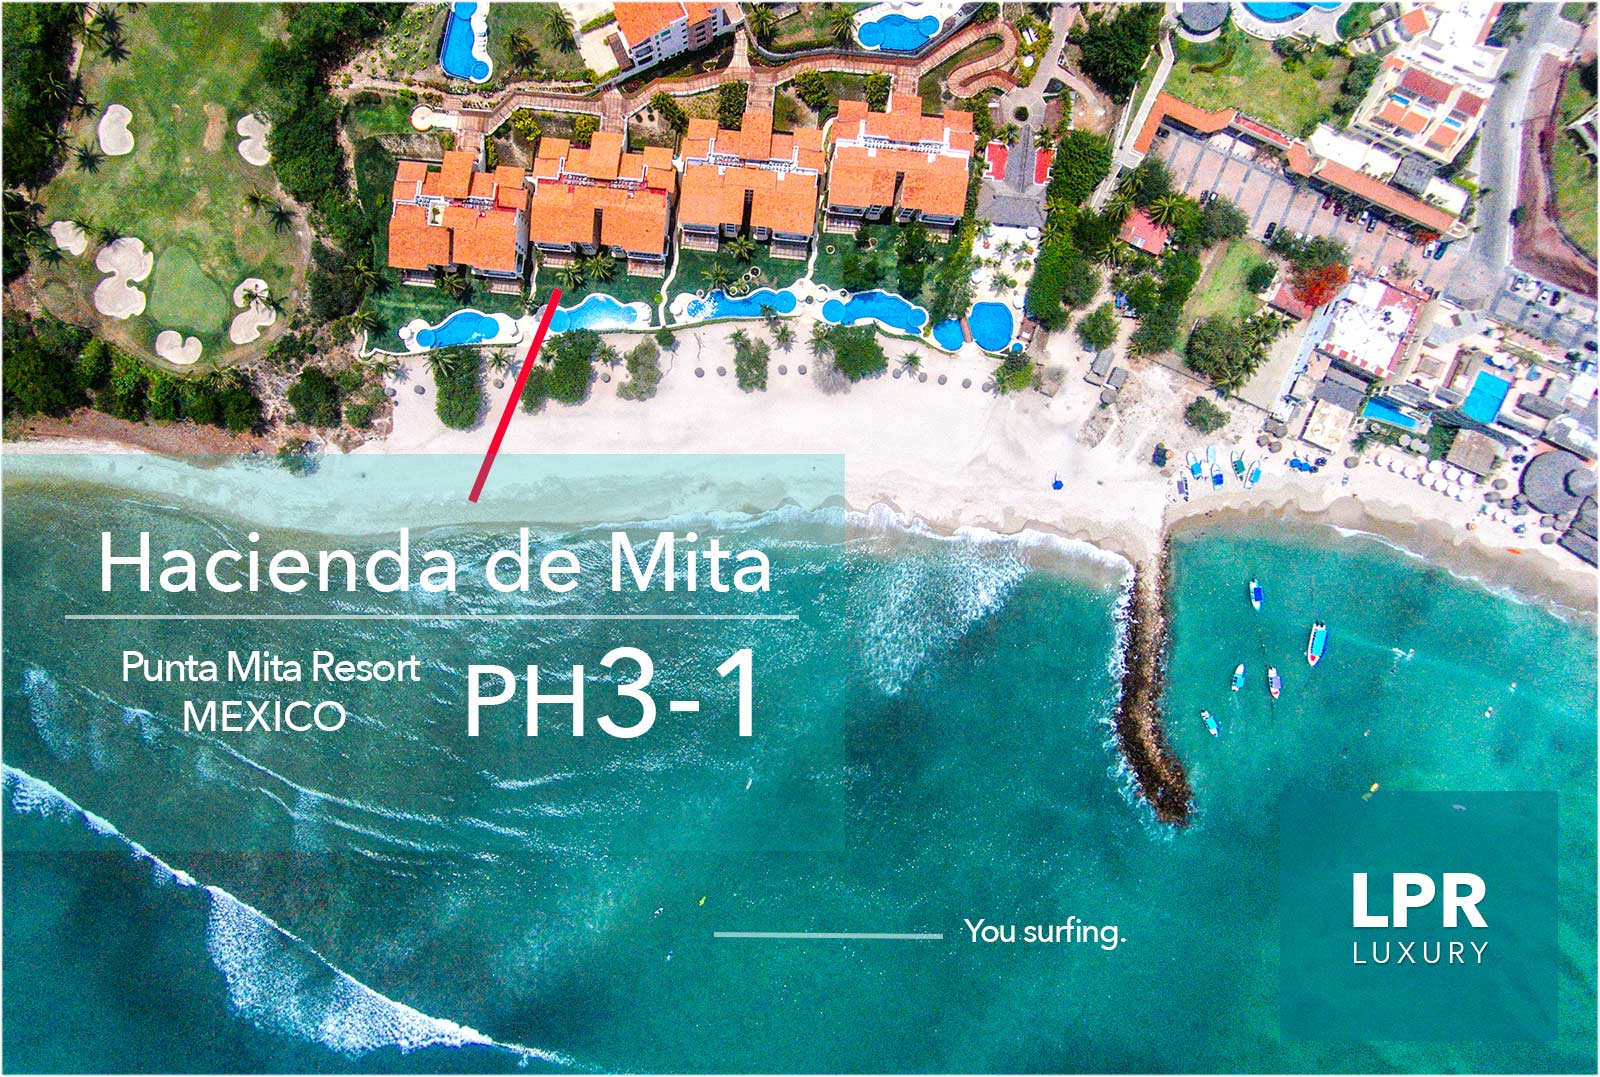 Hacienda de Mita Penthouse 3-1 - Punta Mita Resort - Mexico